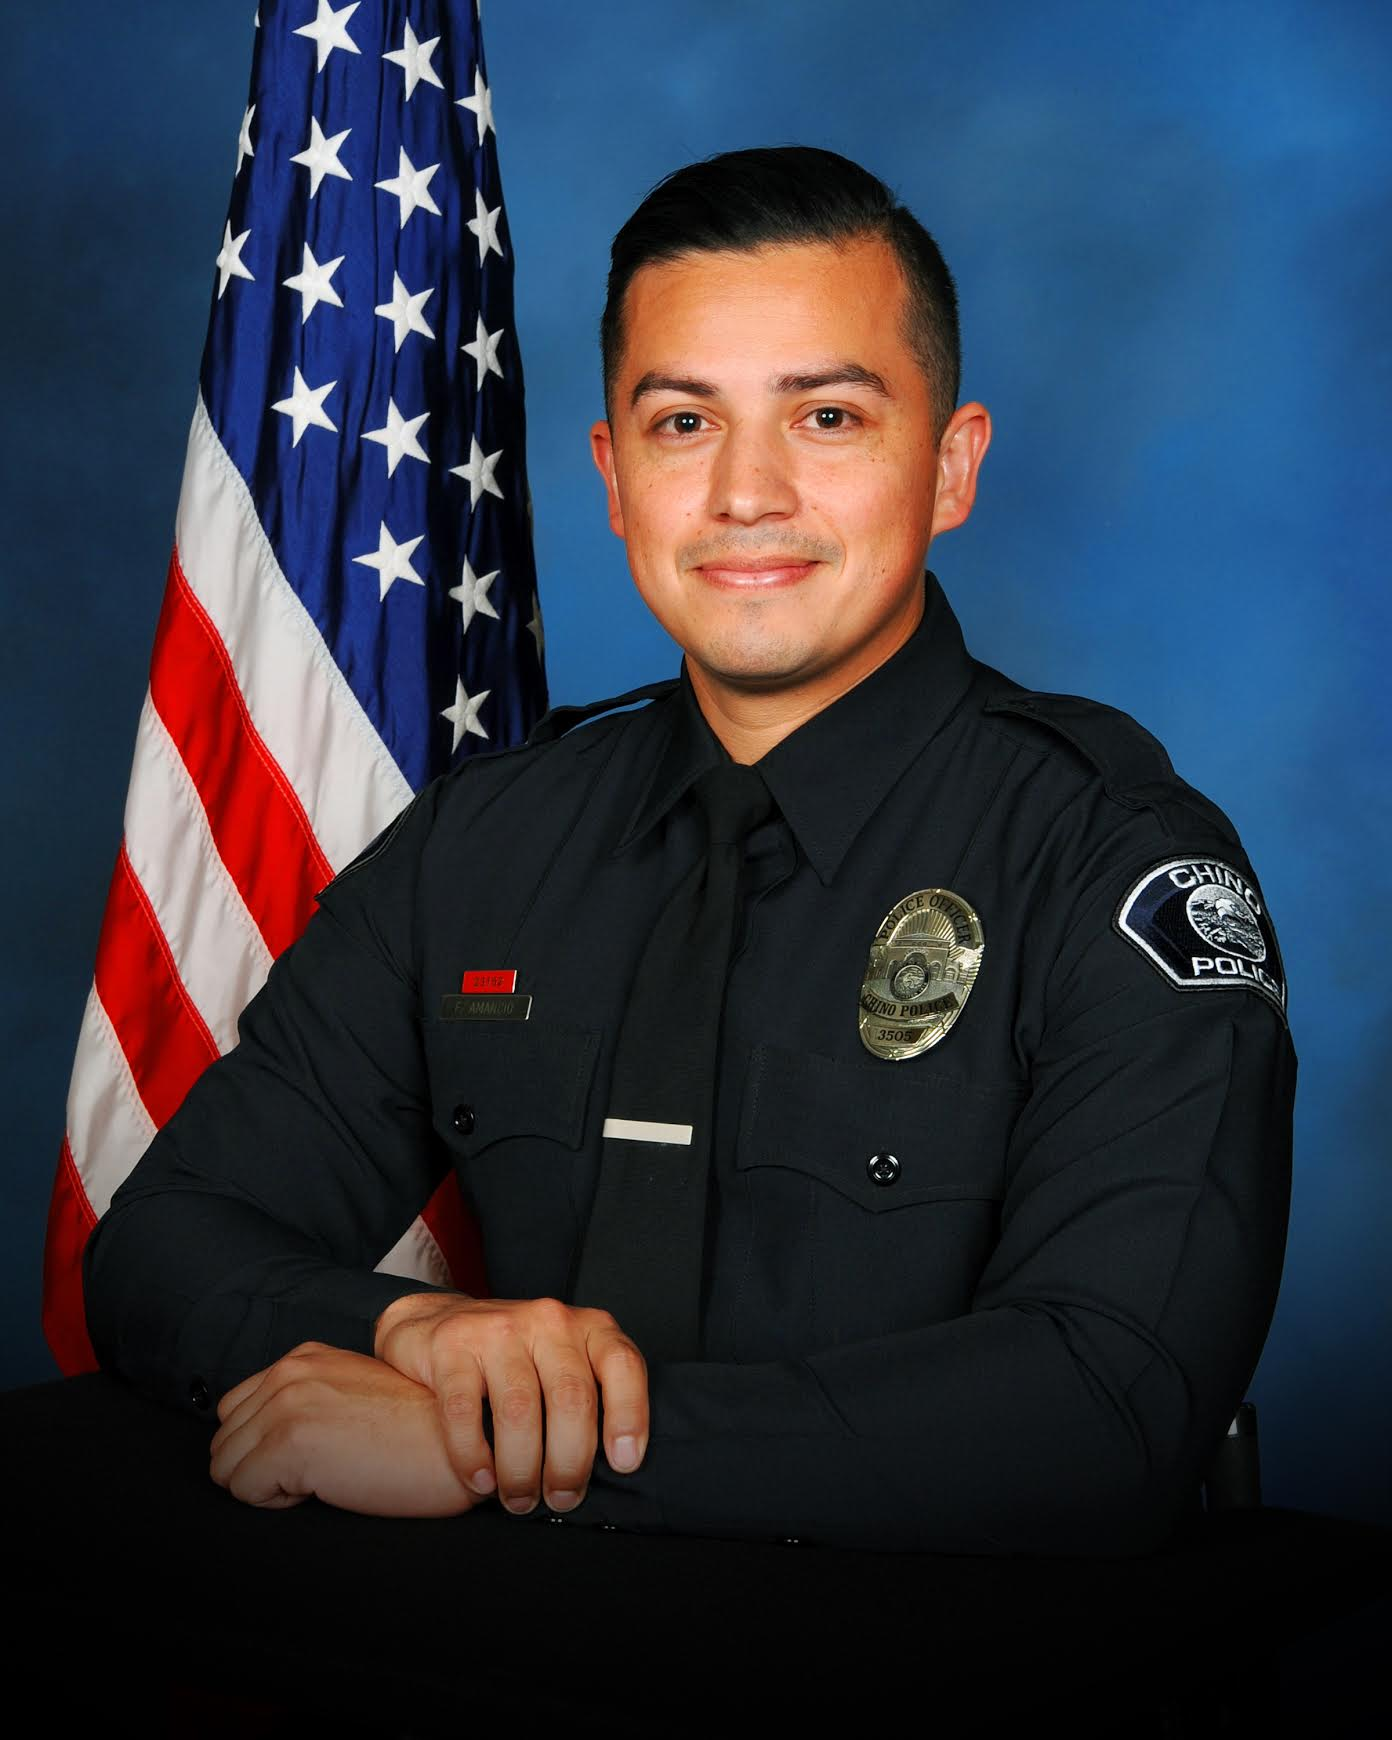 2018 Officer of the Year Officer Fortino Amancio